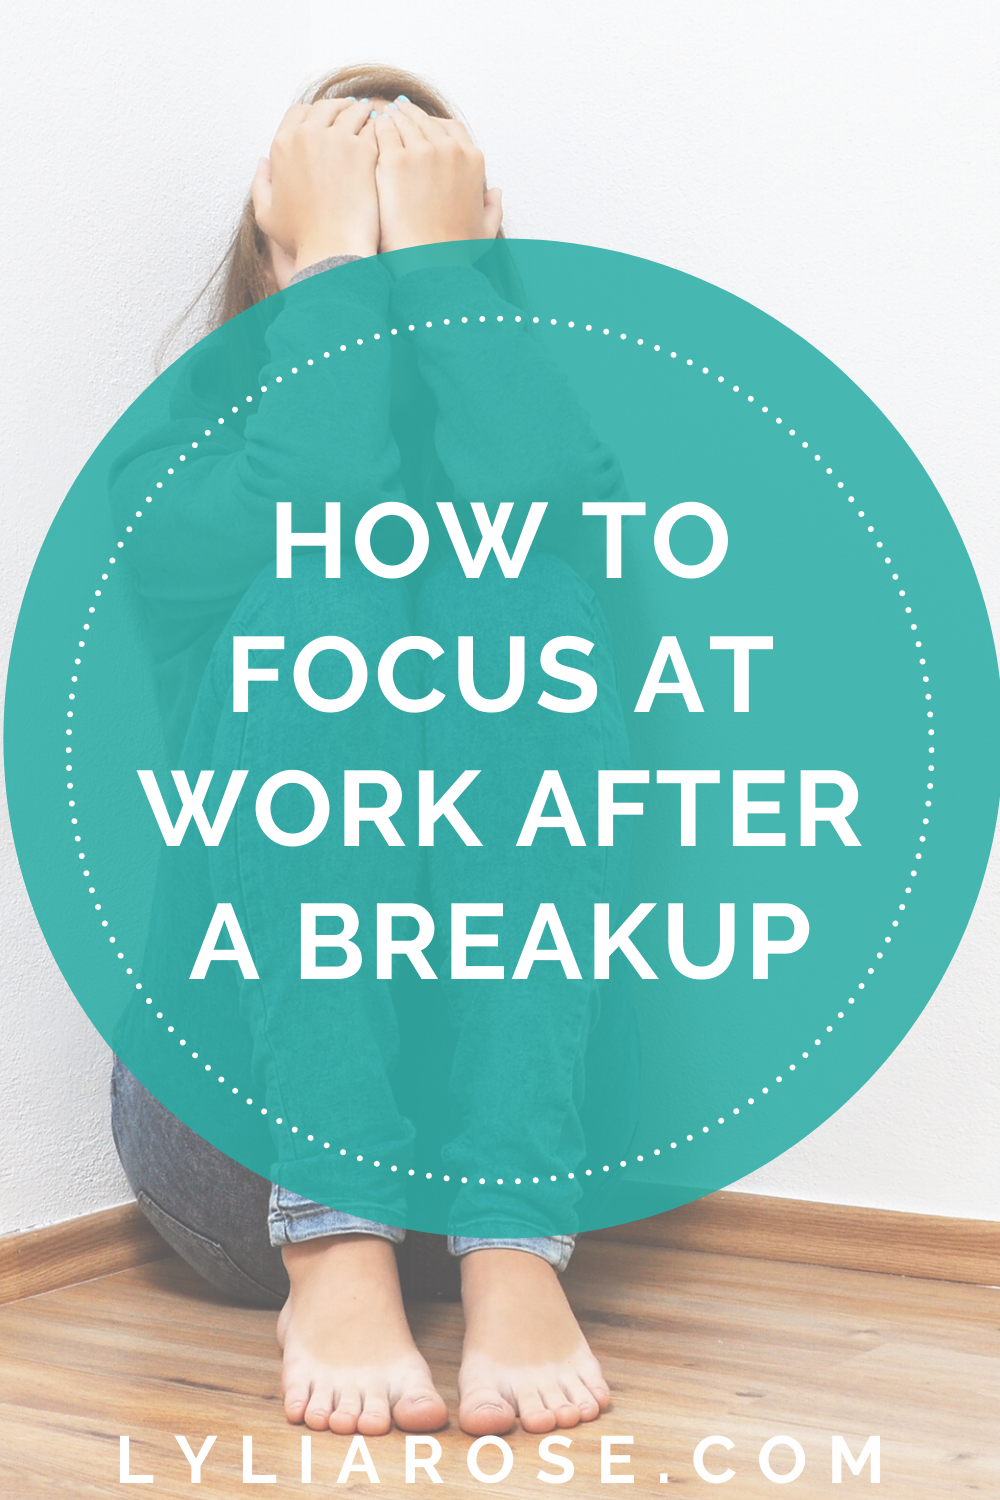 How to focus at work after a breakup (2)